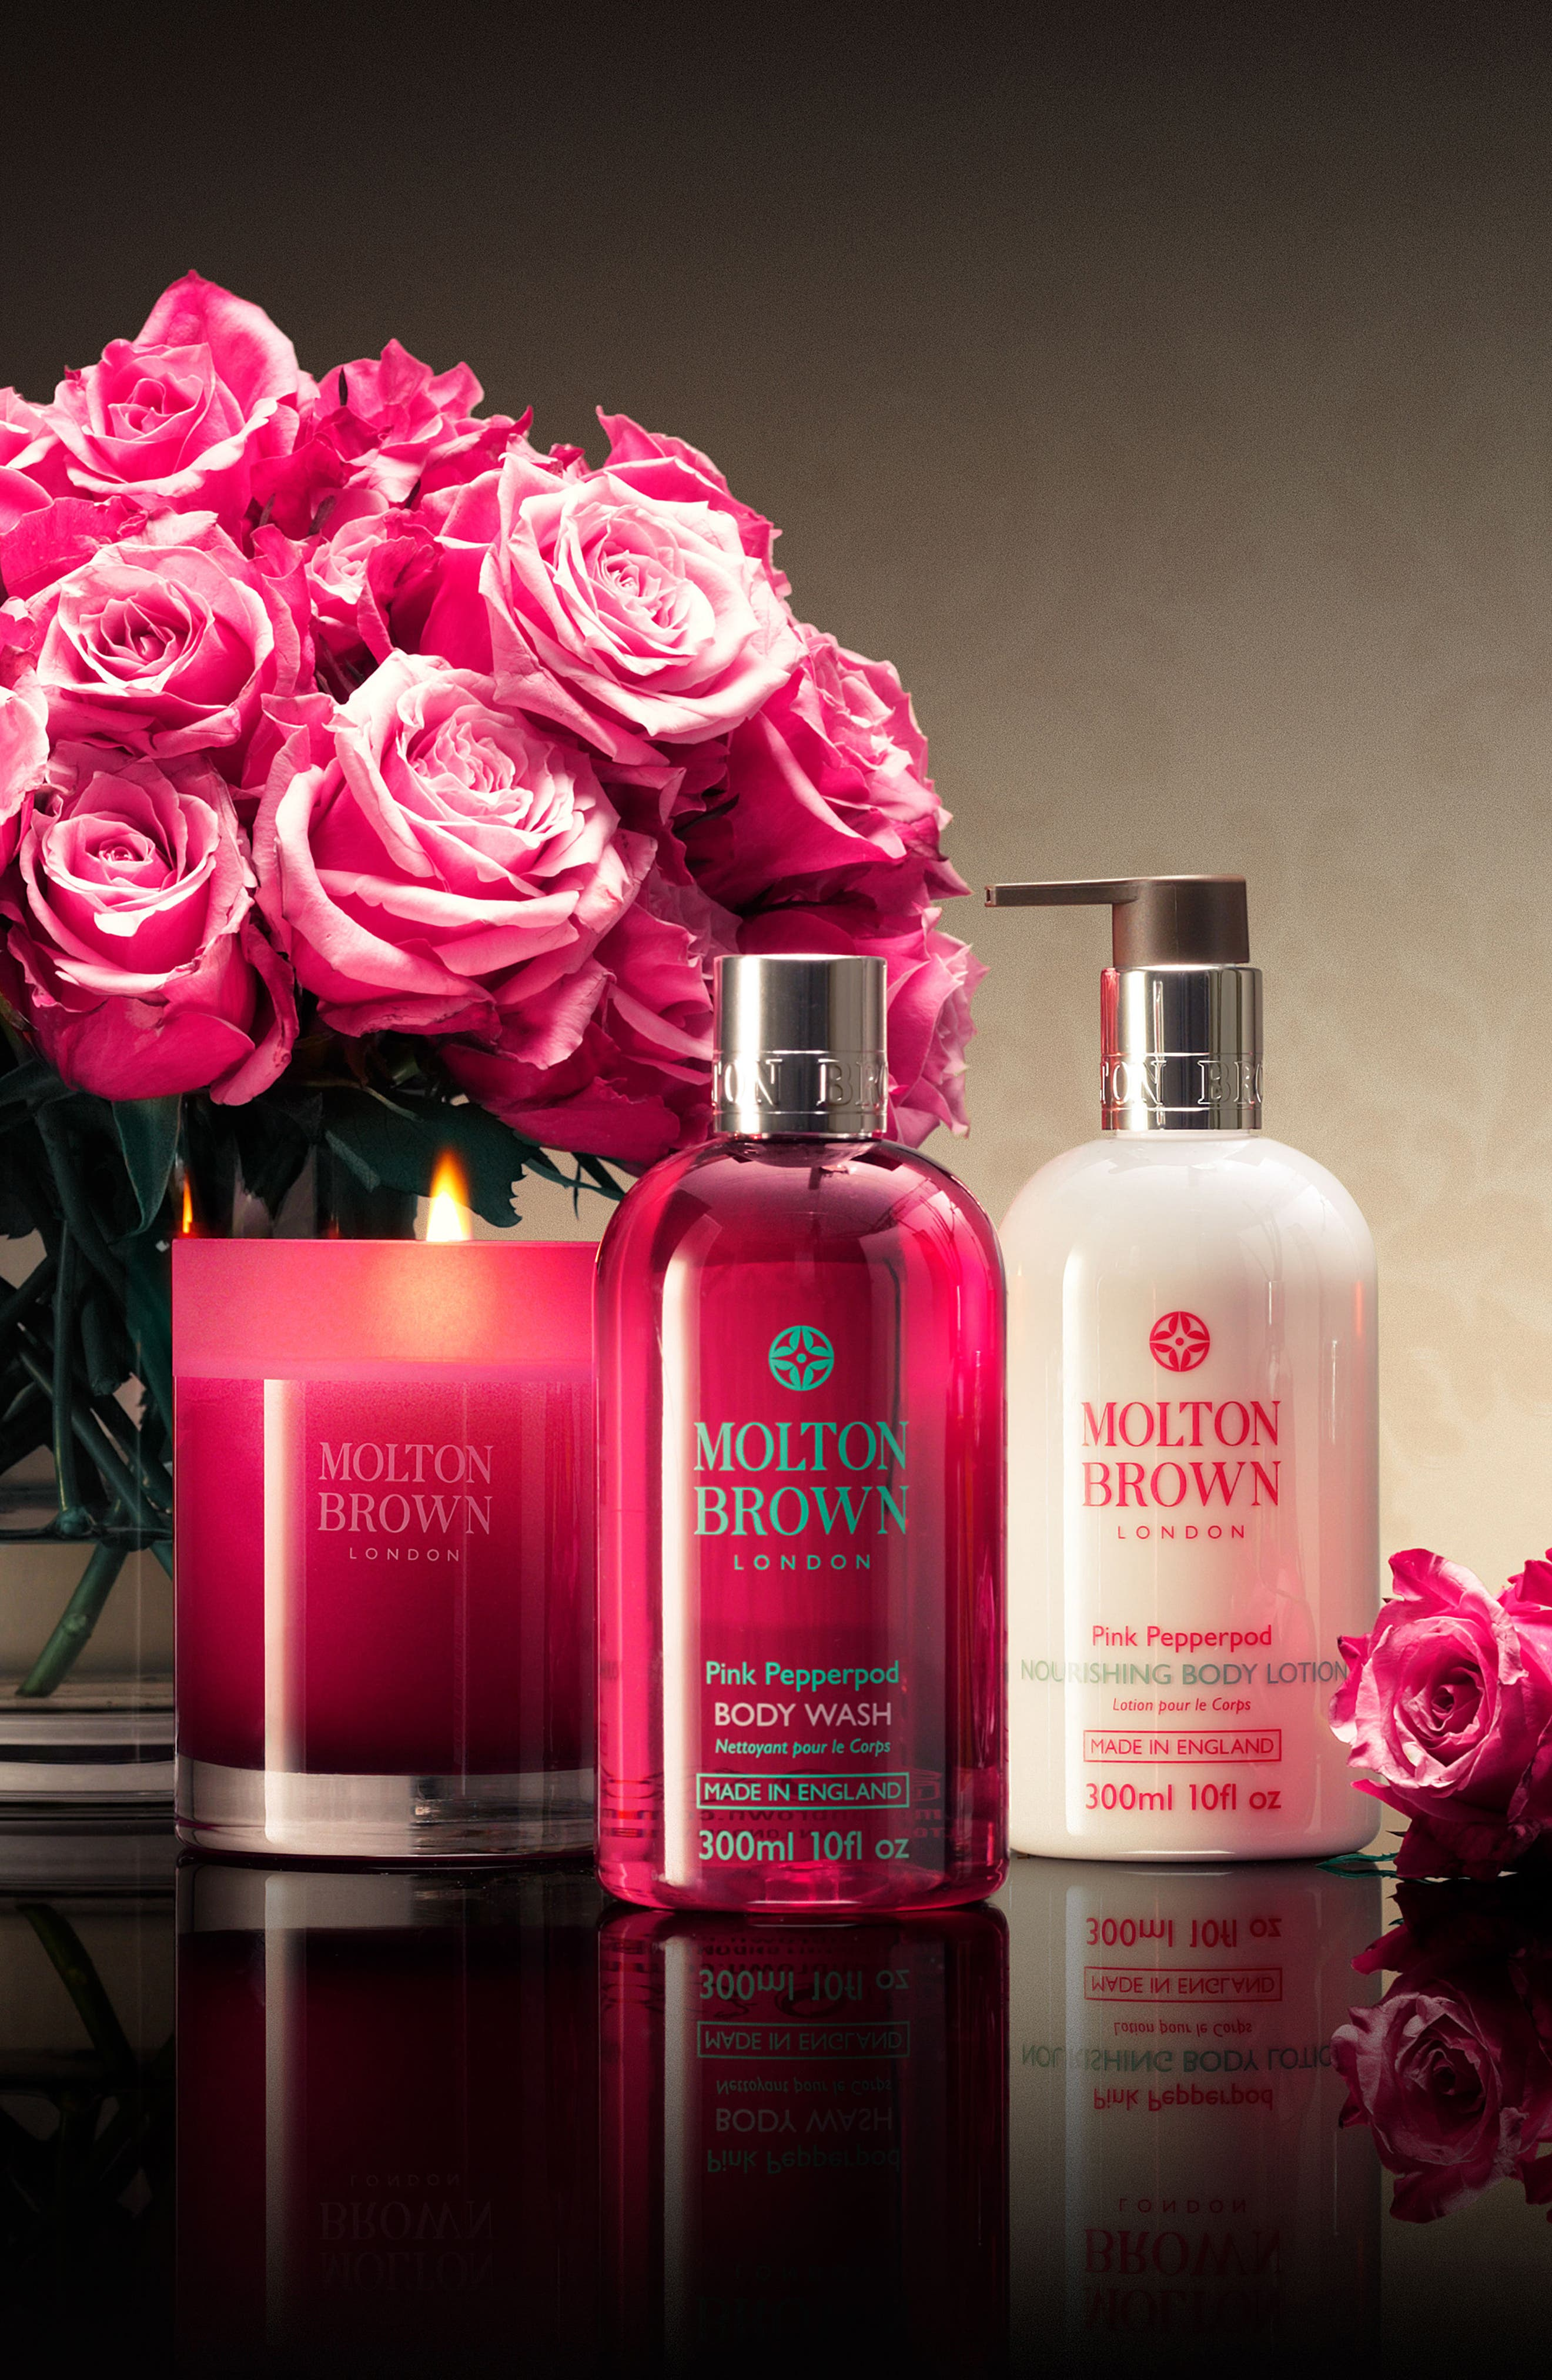 MOLTON BROWN London Pink Pepperpod Collection